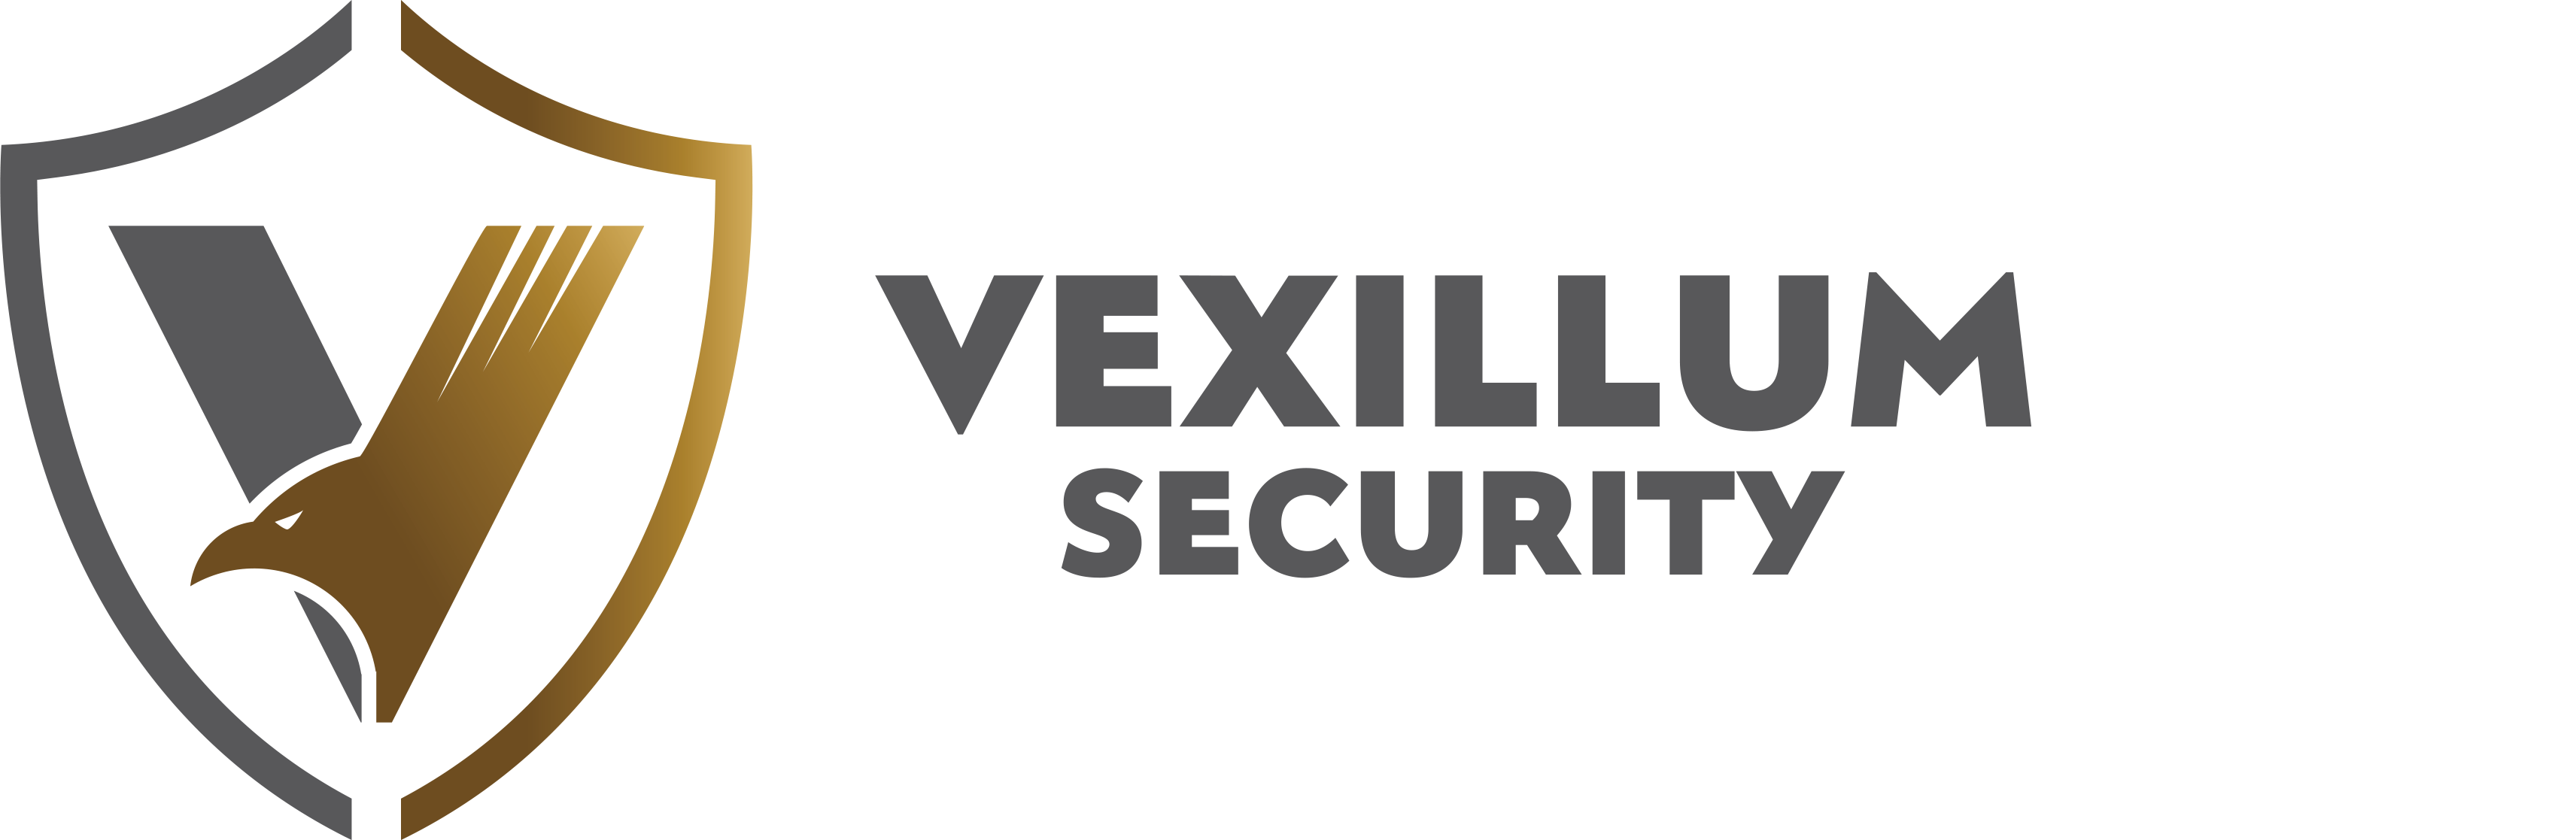 Vexillum Security